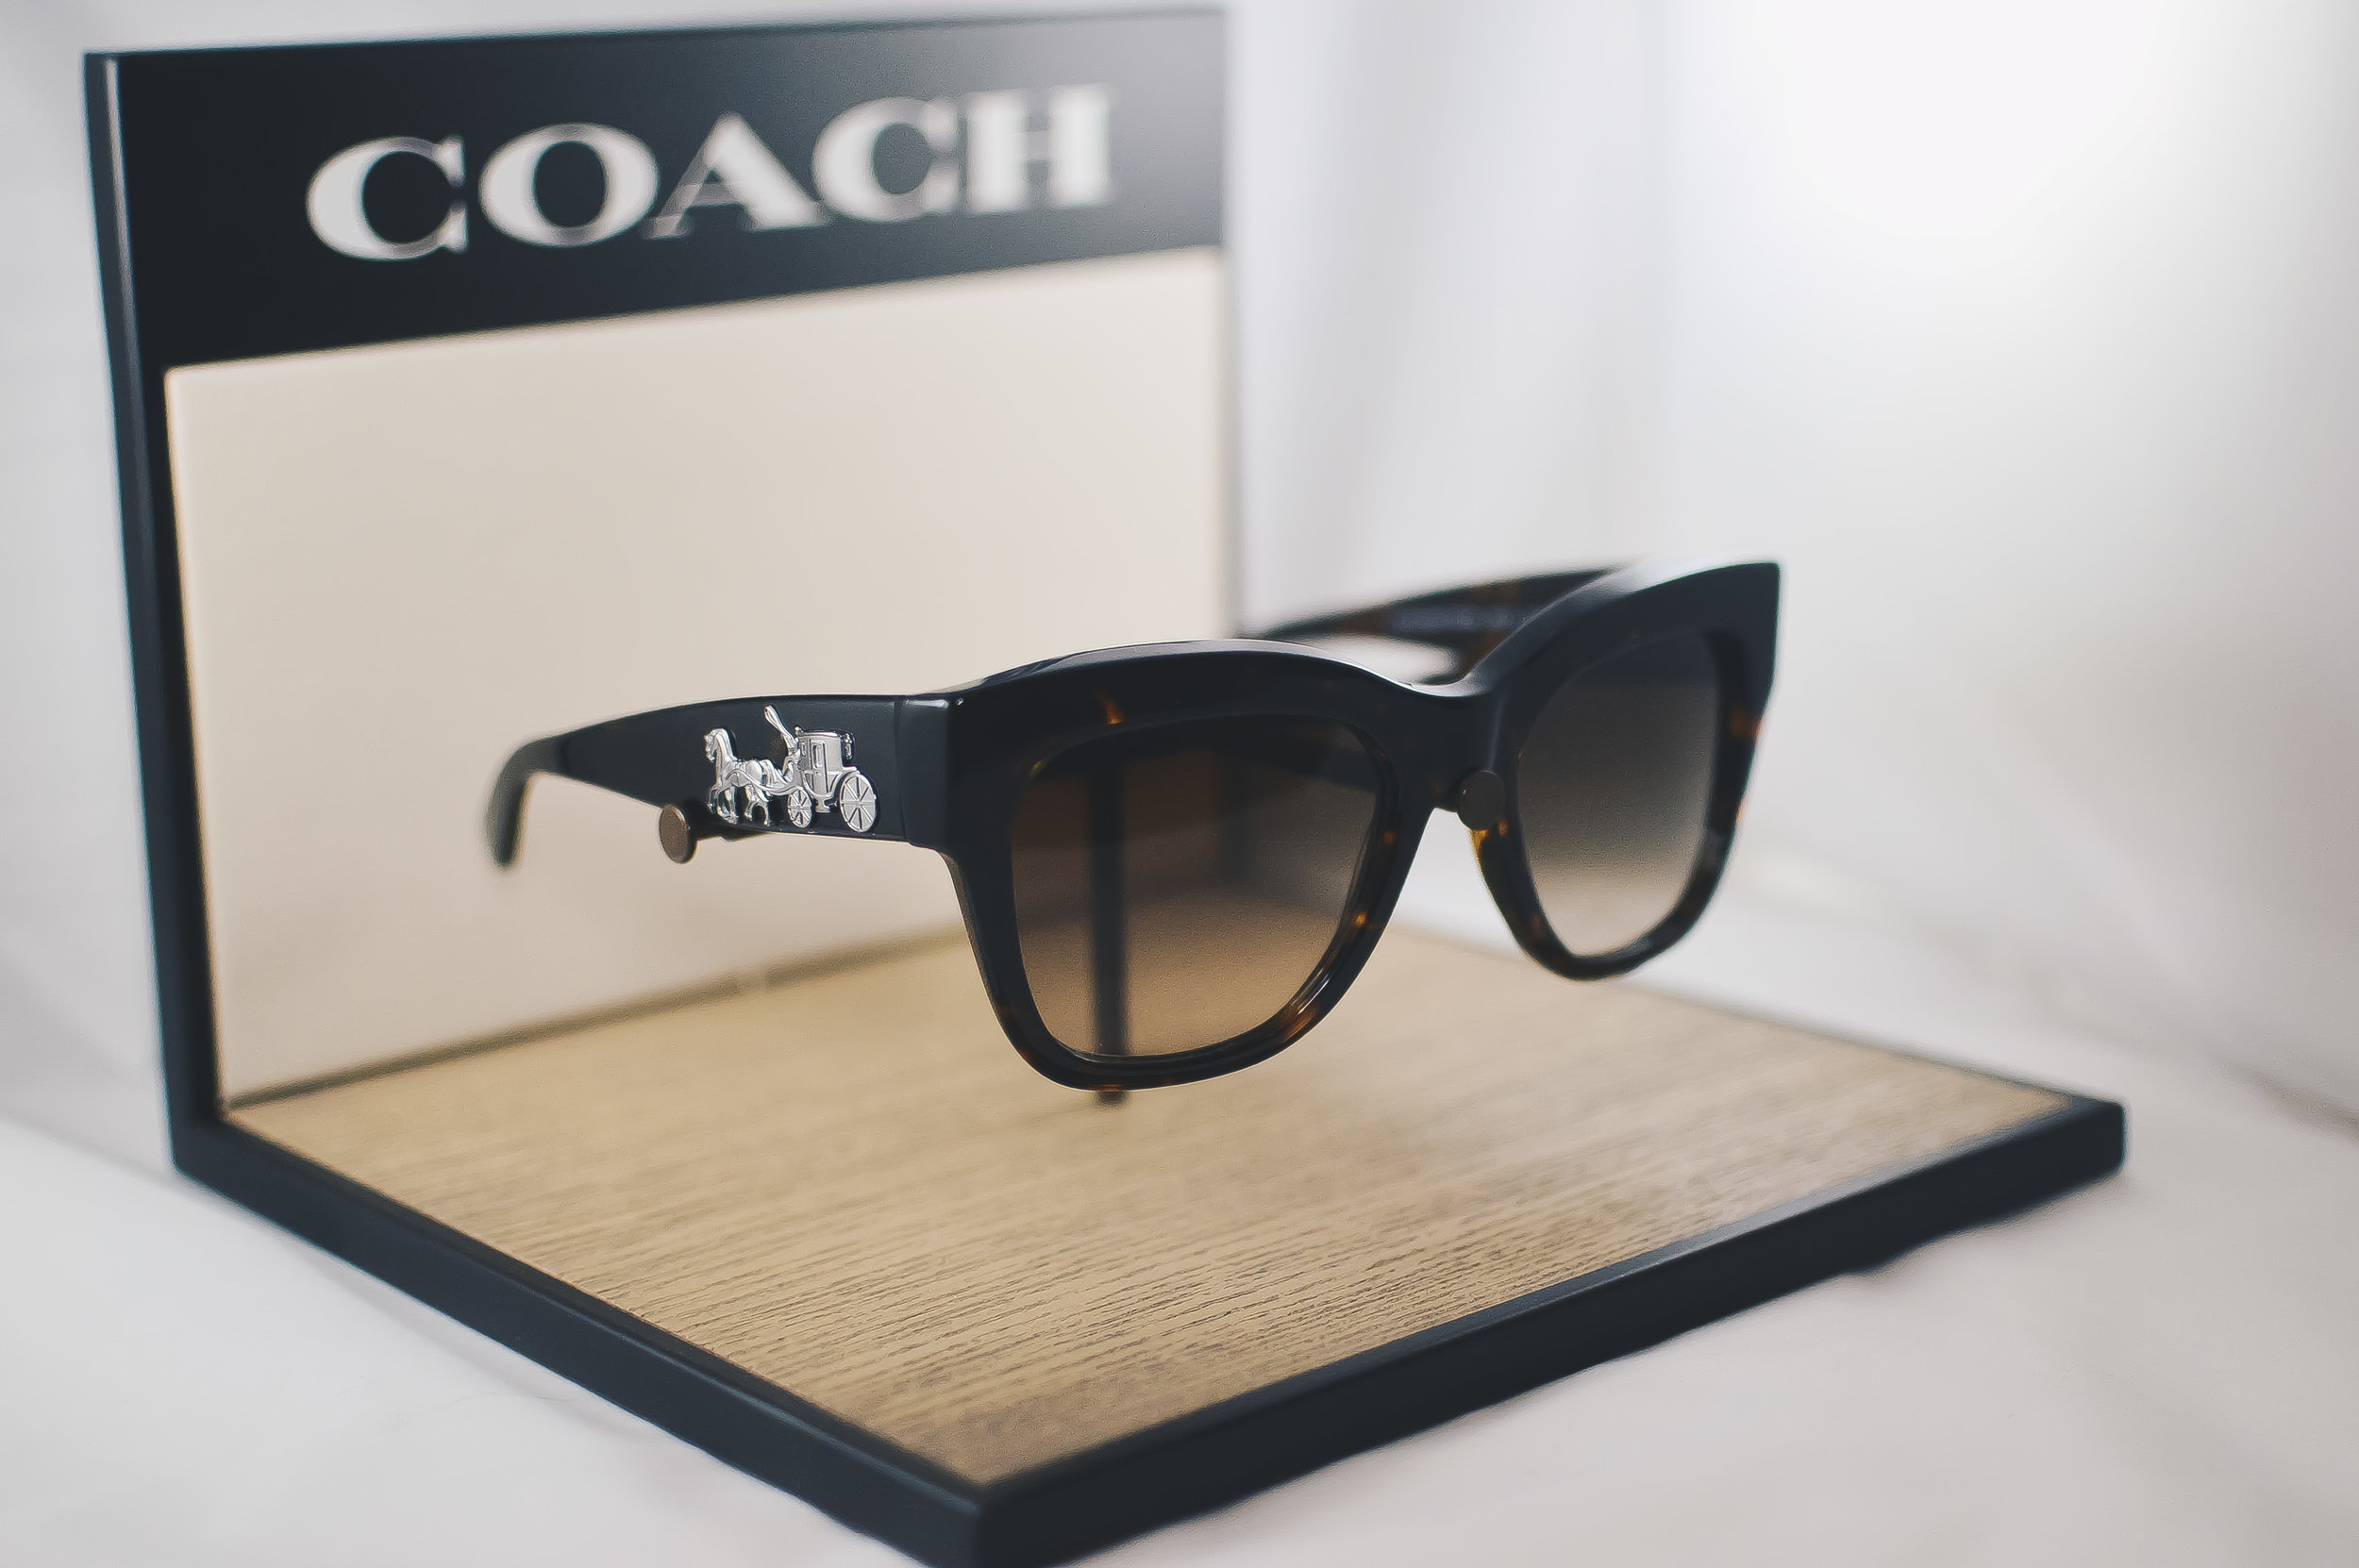 coach - An eyewear collection perfectly expresses the effortless New York style and the authentic American heritage of the Coach brand.